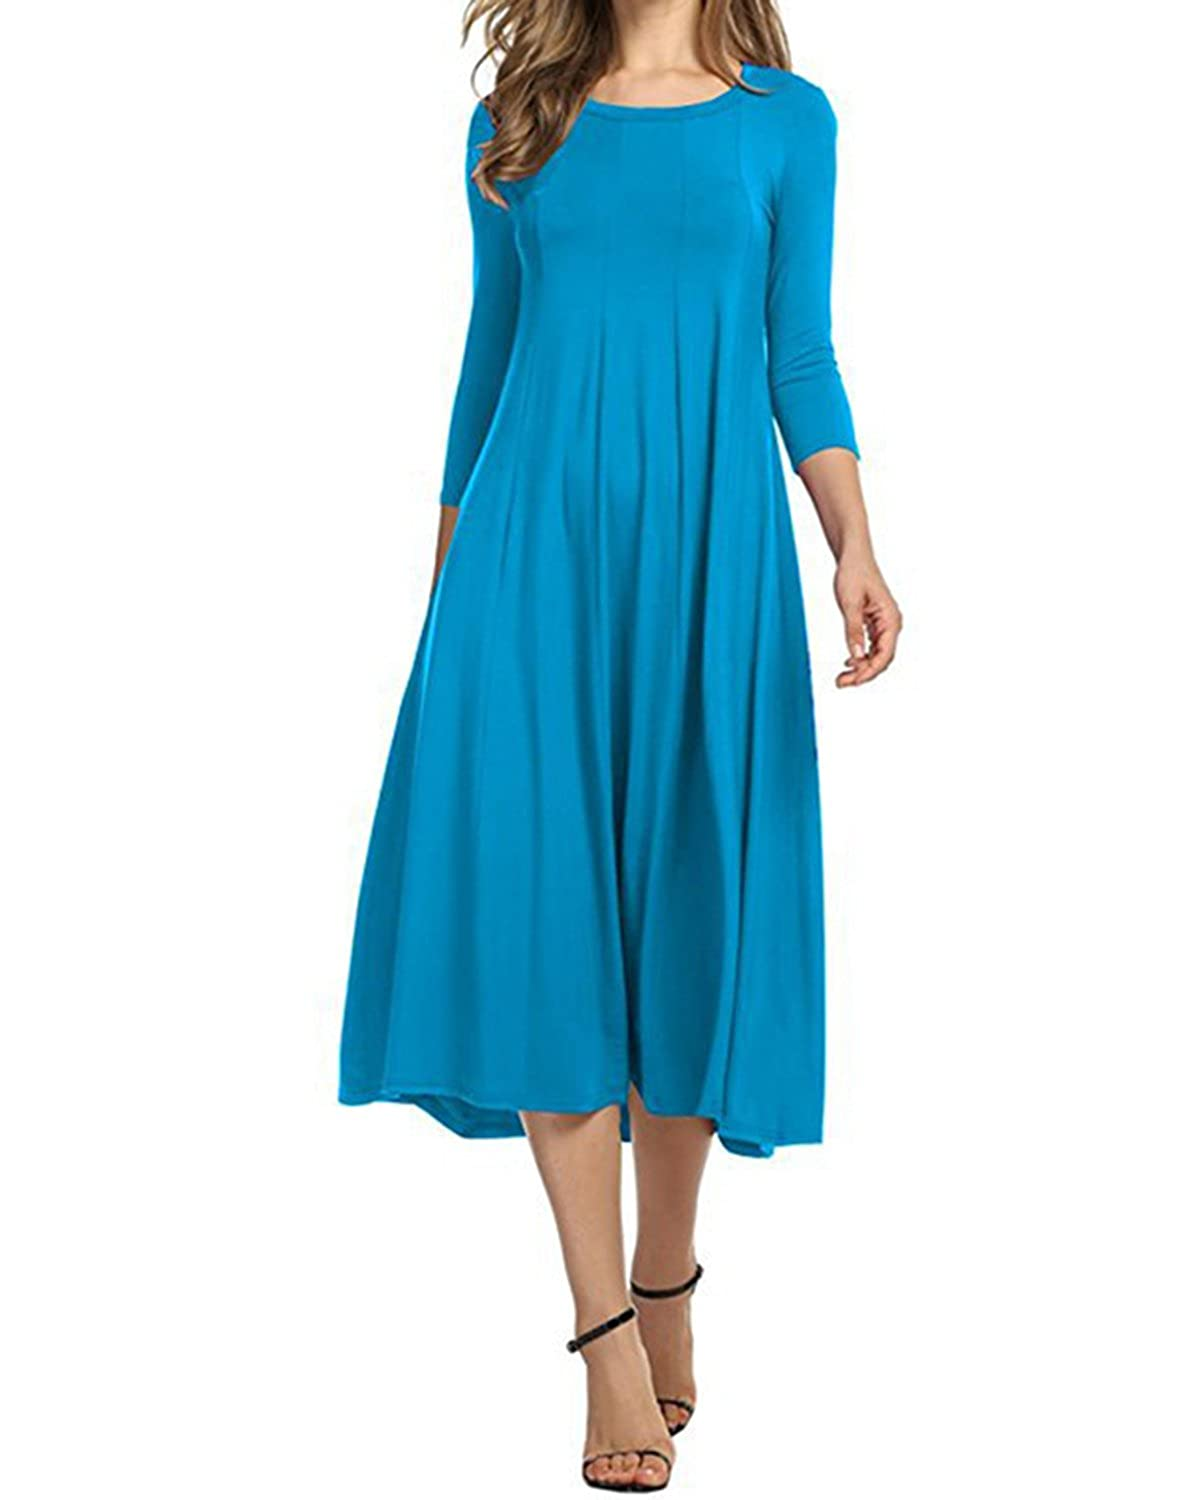 AUDATE Women's Casual 3/4 Sleeve Solid Color A-Line Loose Swing Midi Dress S-3XL AUDATE-CA0029845@880